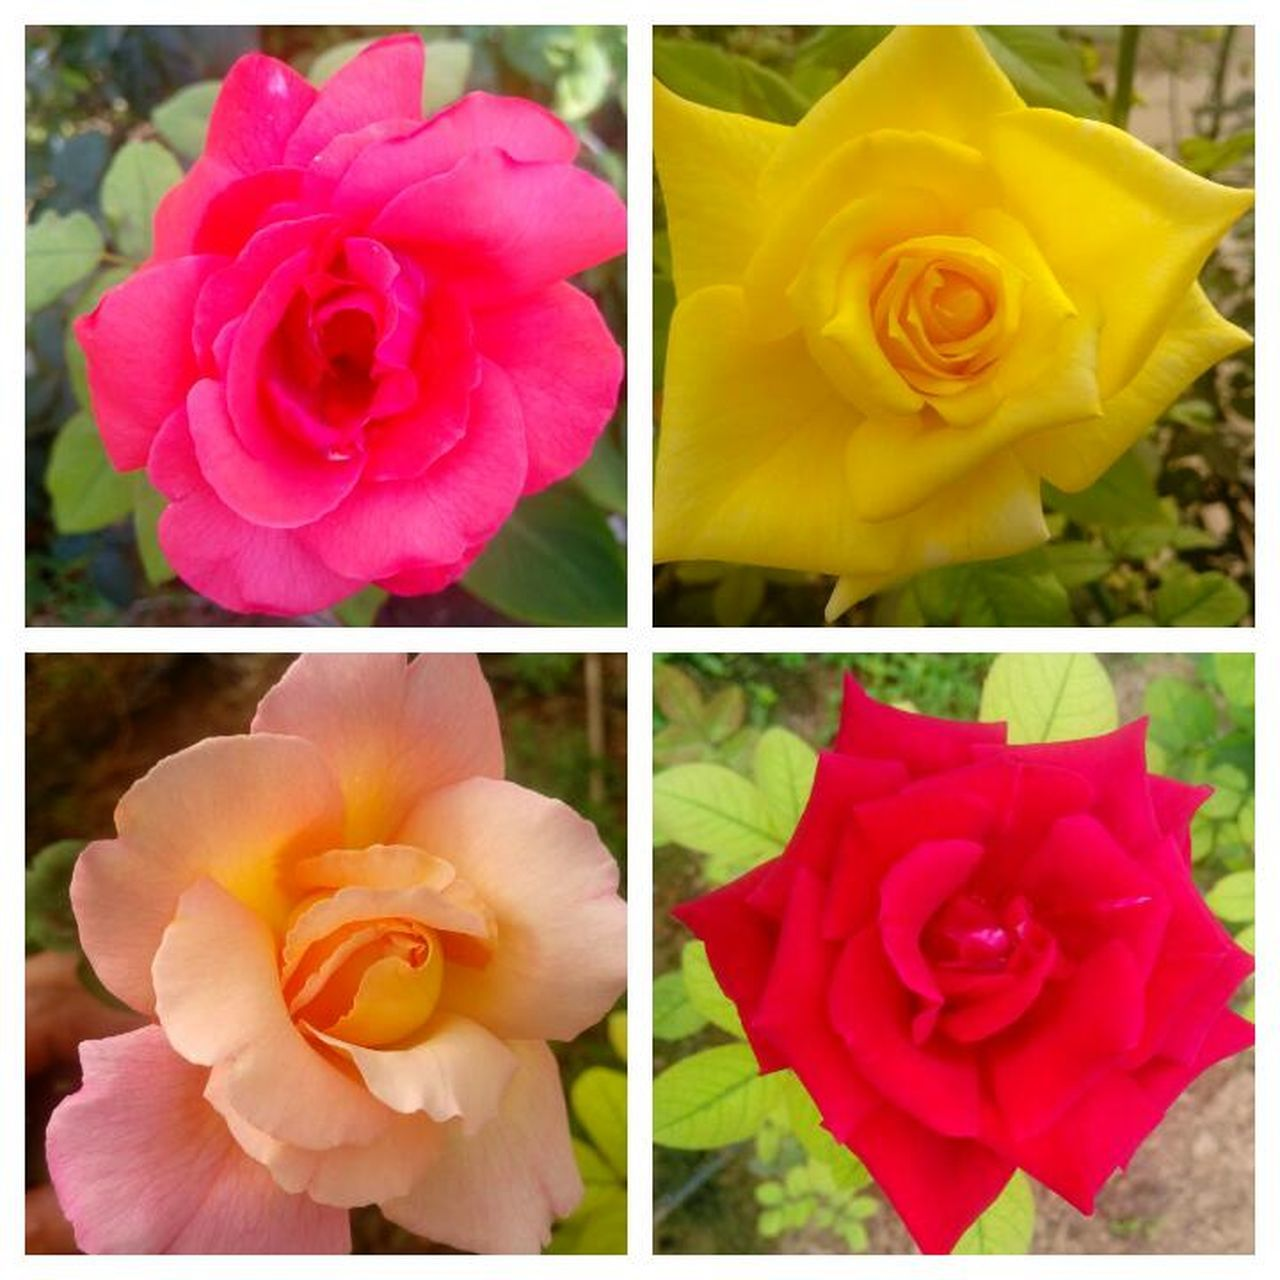 flower, petal, nature, beauty in nature, collage, flower head, blooming, yellow, growth, rose - flower, fragility, plant, freshness, no people, close-up, multiple image, outdoors